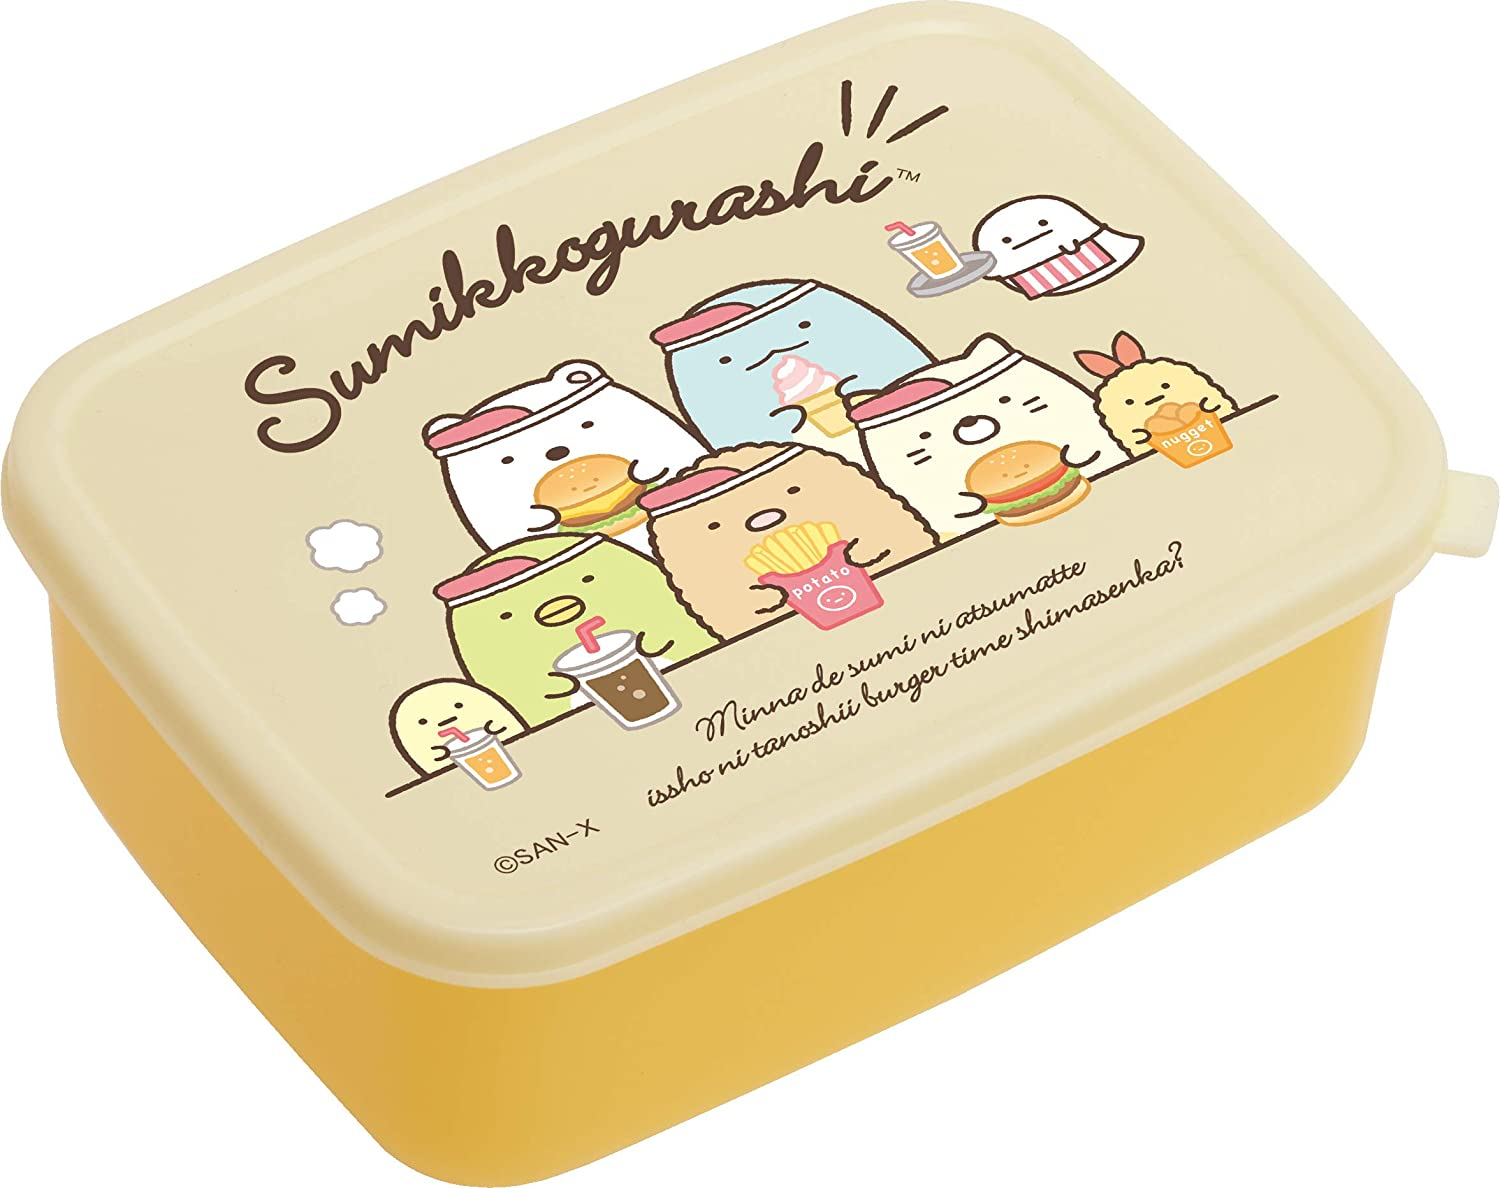 San-X SC G Lunch Container Box Ky82901